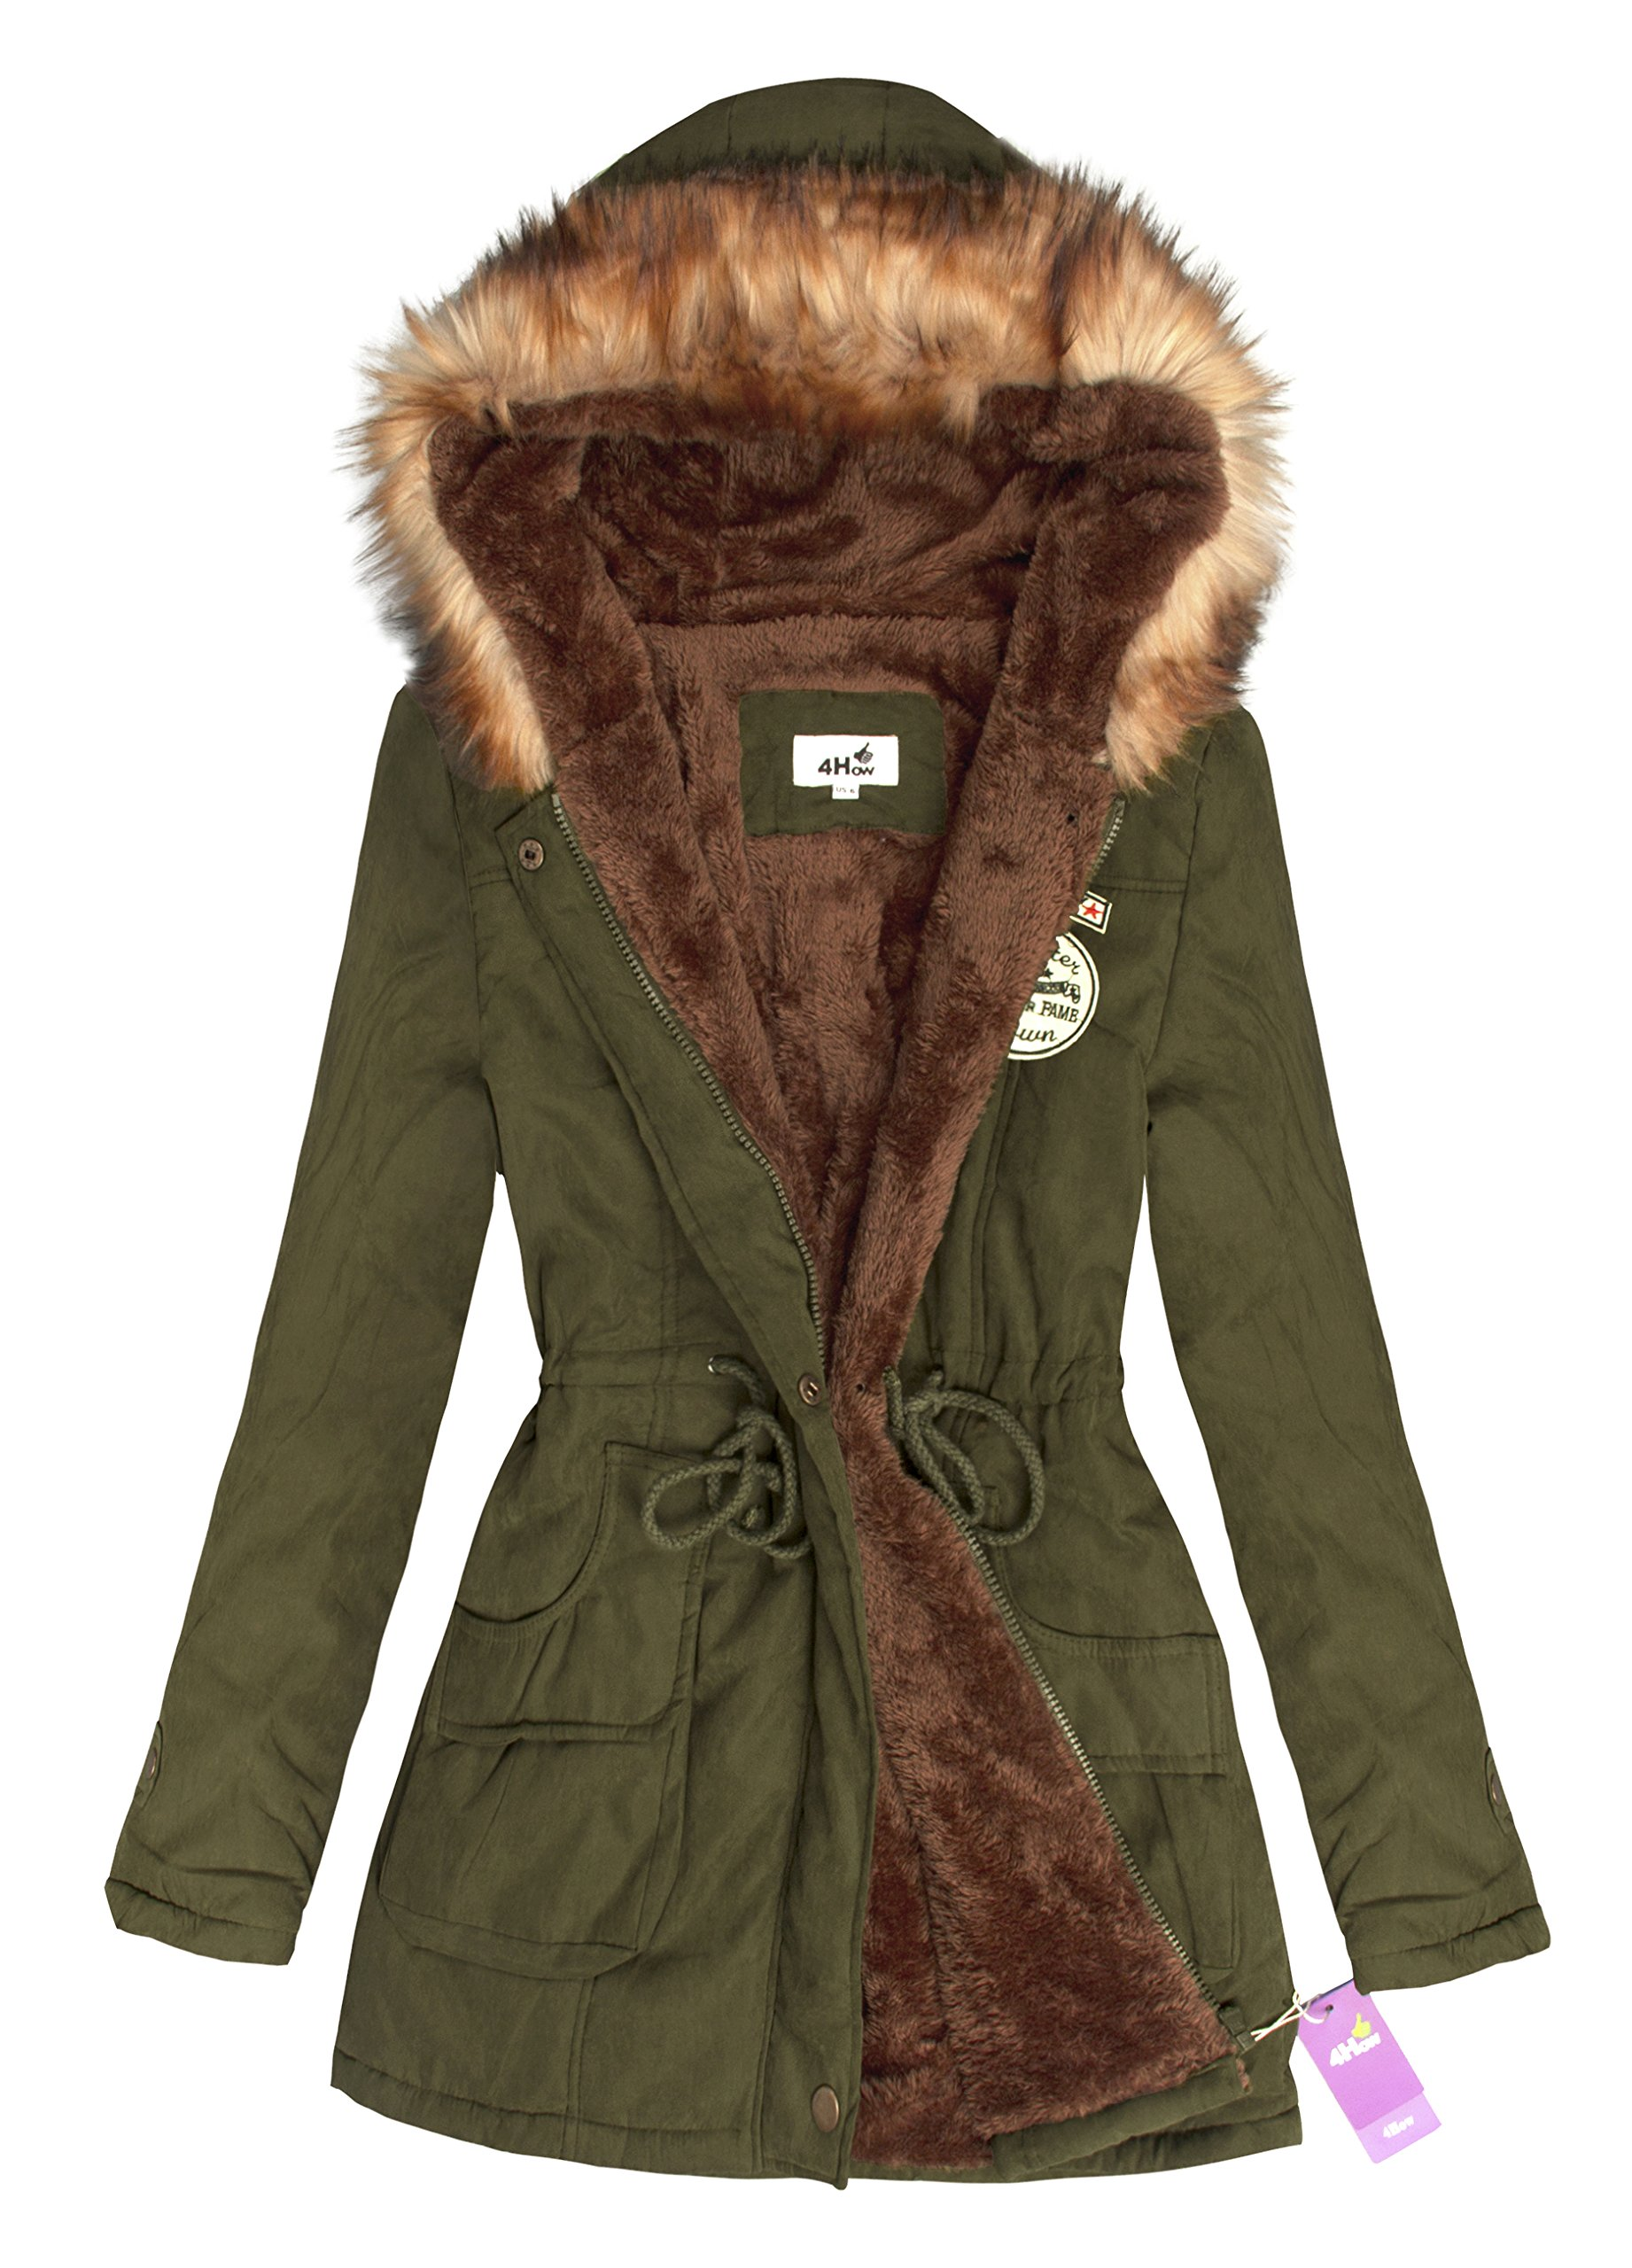 469a880cba Galleon - 4HOW Womens Casual Jacket With Hoodie Warm Coat Army Green US Size  8